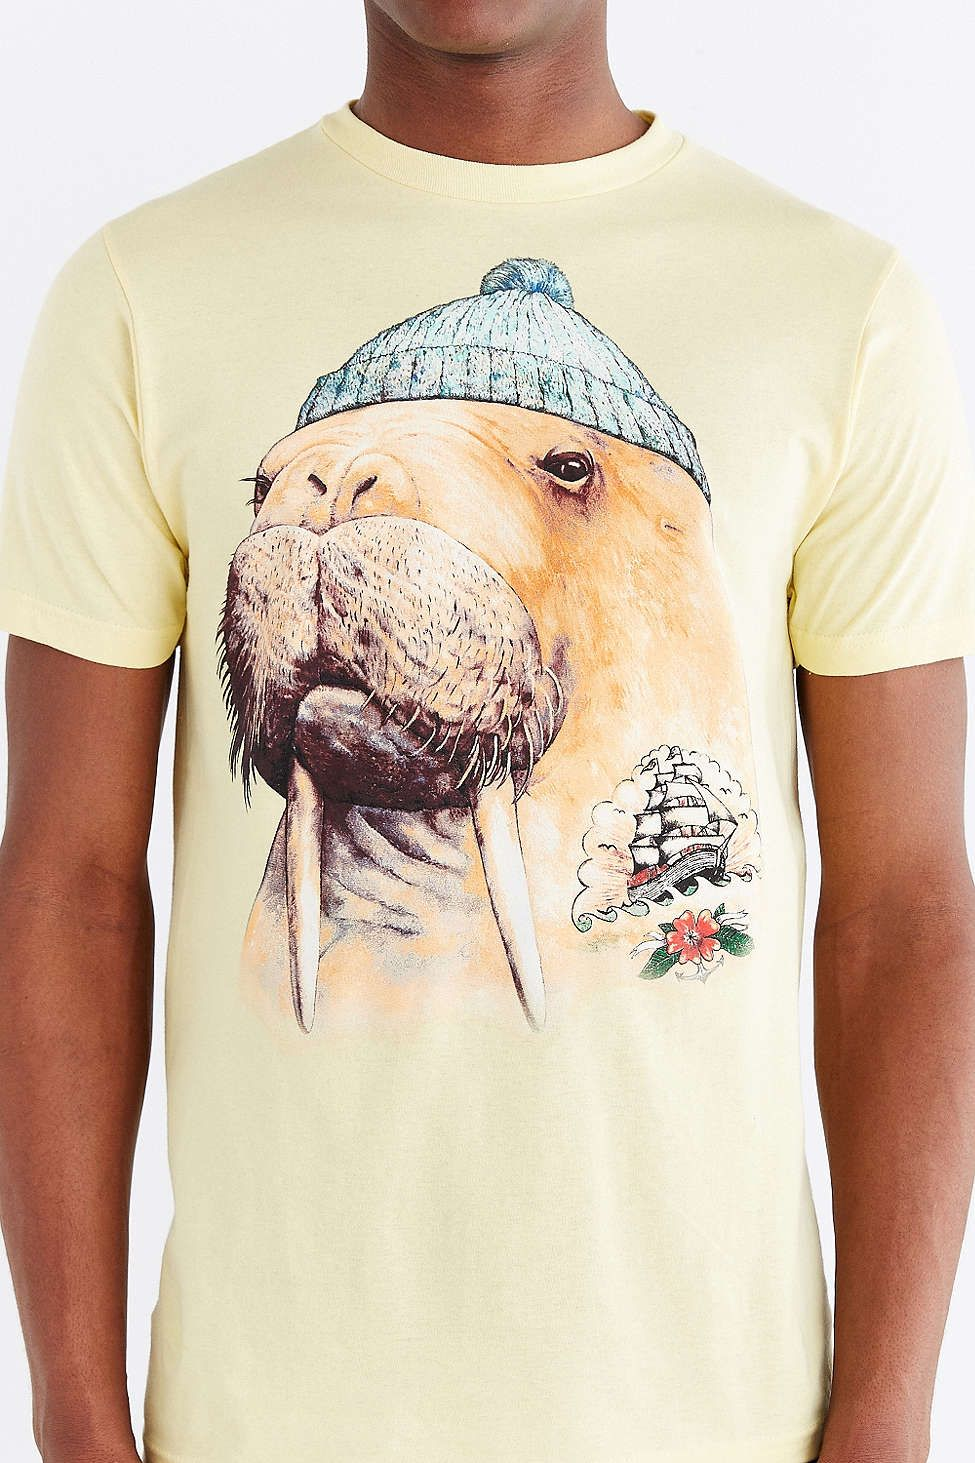 5d62213e3d Graphic T-Shirts + Sweatshirts for Men. Tattooed Walrus Tee - Urban  Outfitters